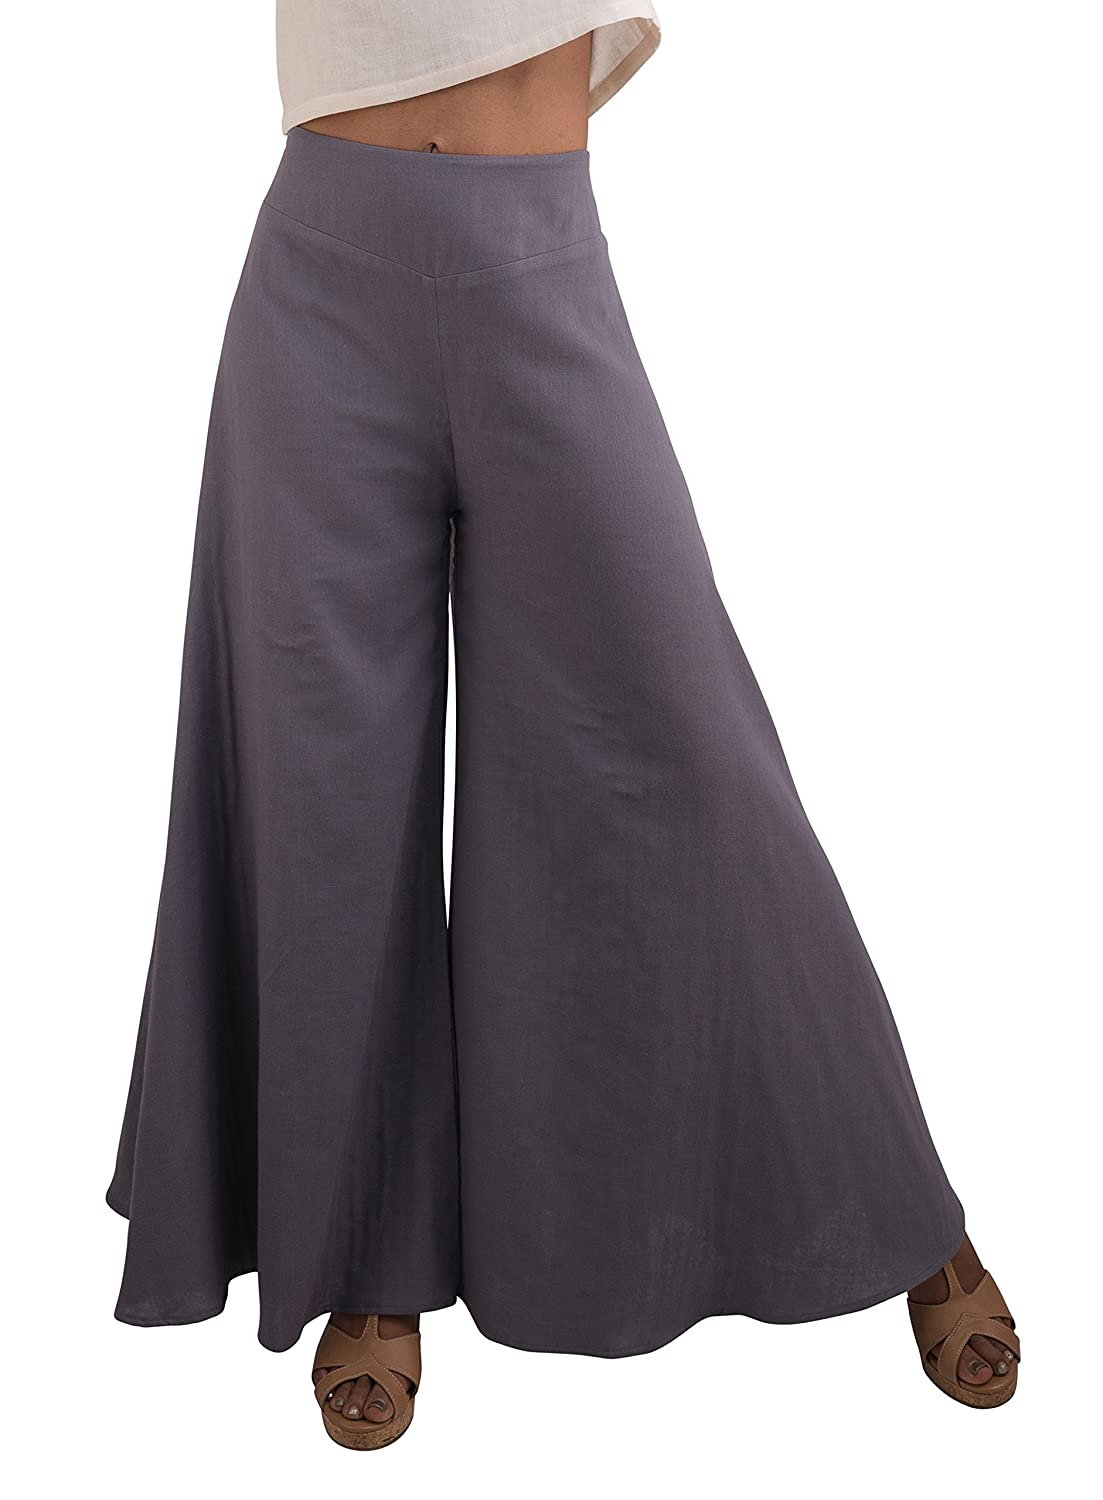 Women's Wide Leg Organic Cotton Palazzo Pants, Fair Trade by Tropic Bliss 100-Solid-Palazzo-$P